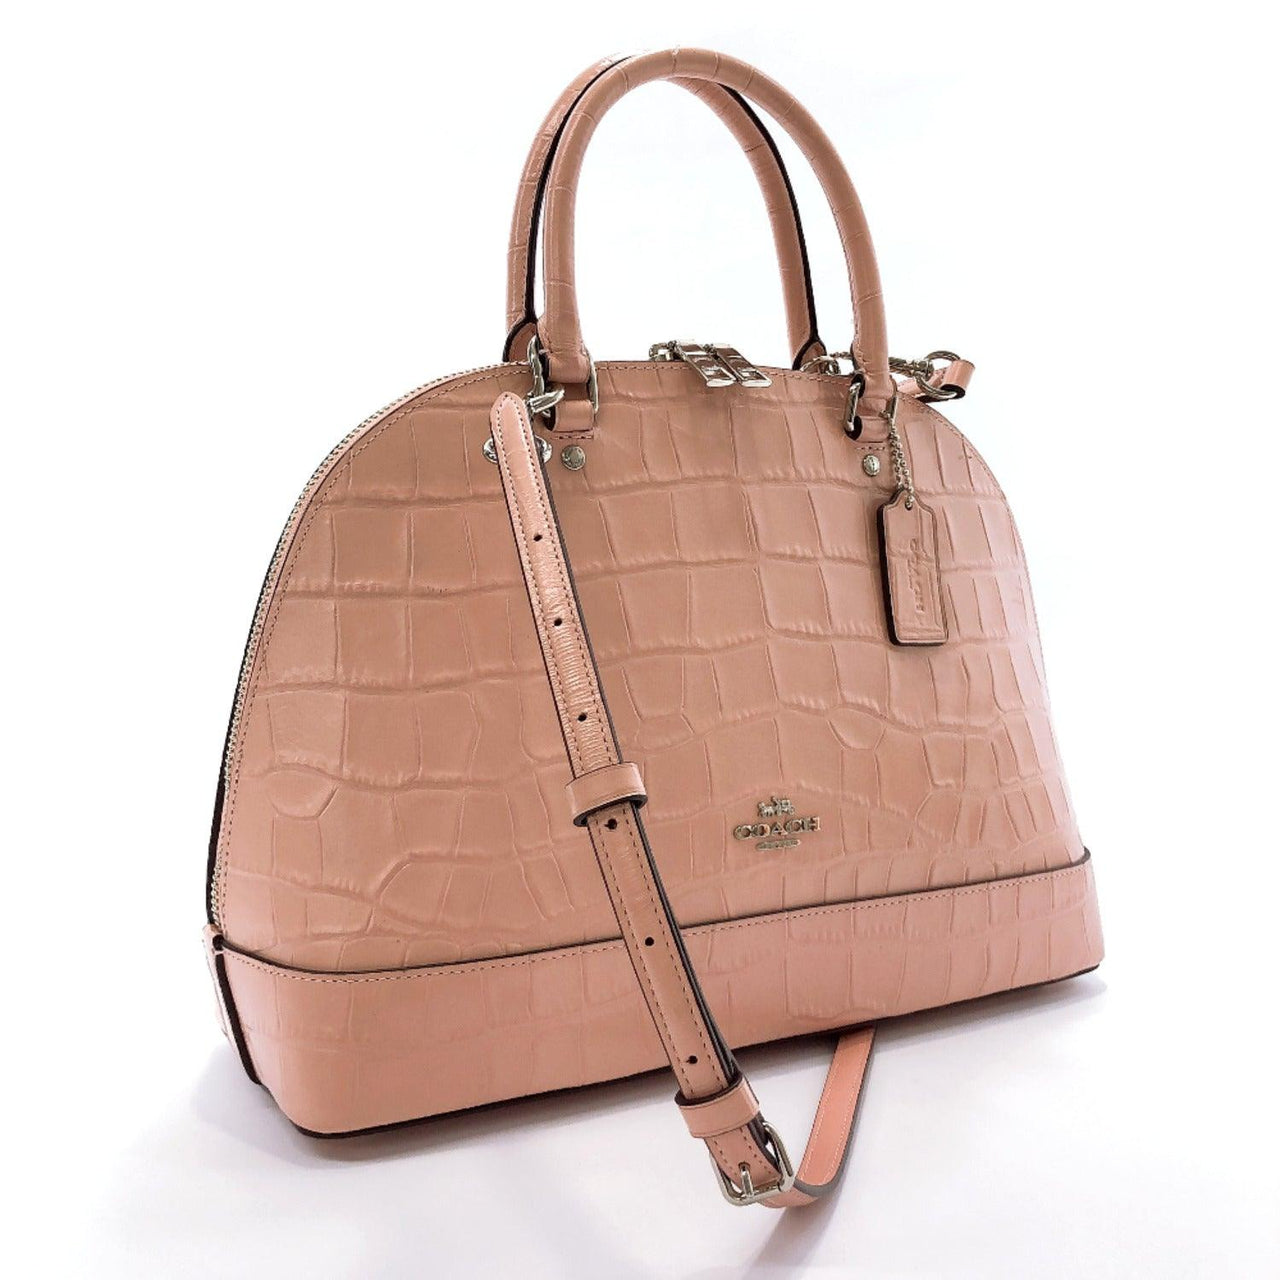 COACH Handbag F38954 leather pink Women Used